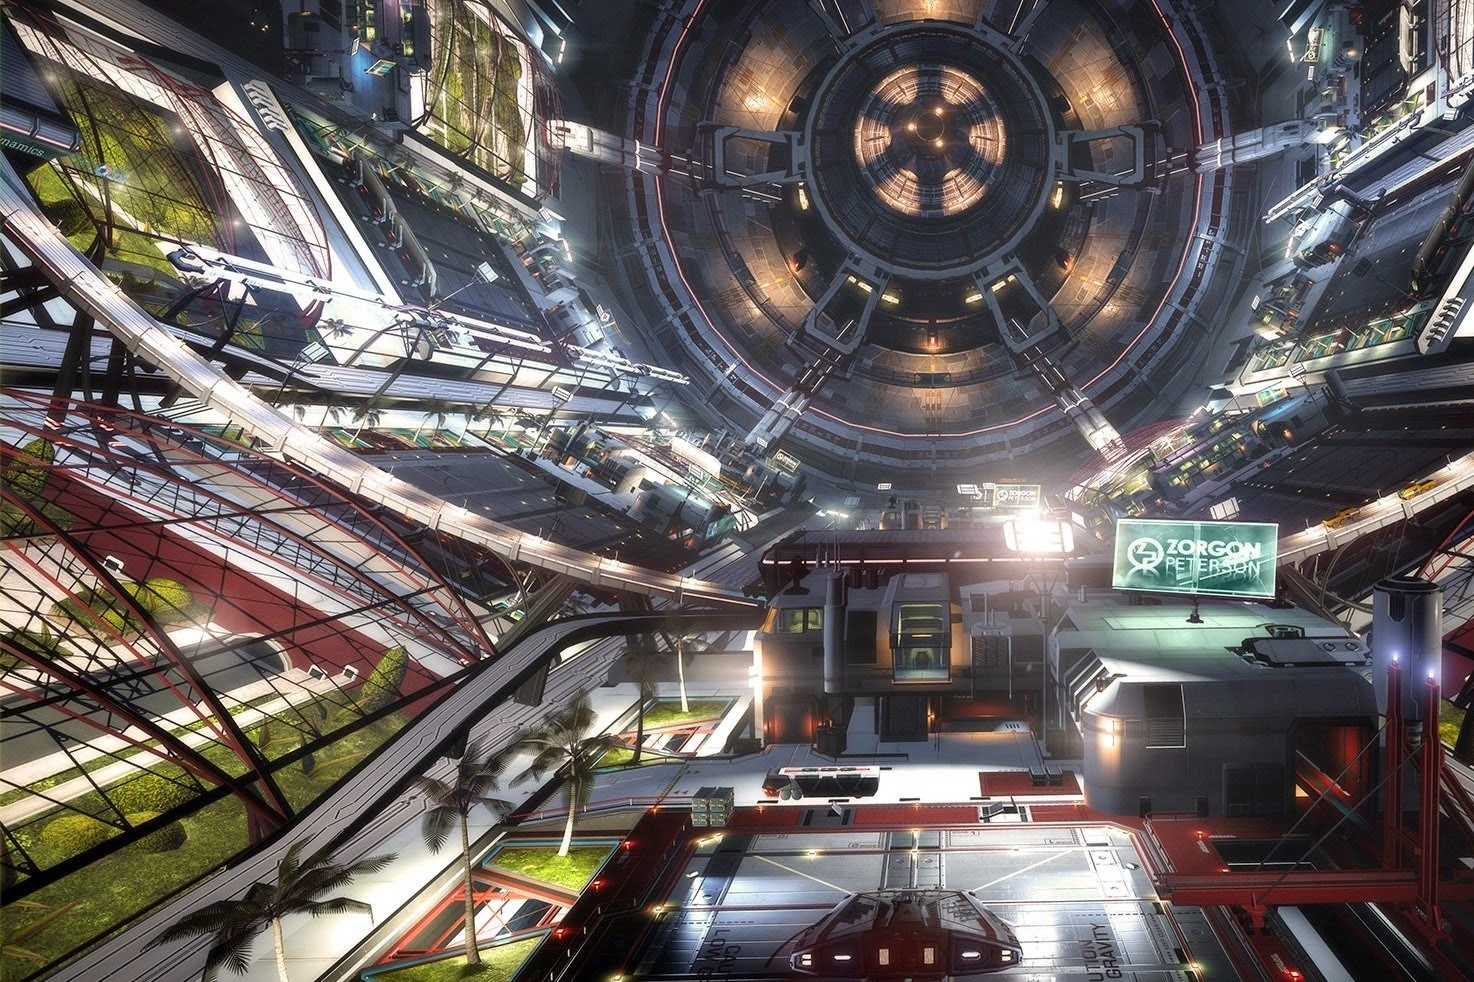 http://www.eurogamer.net/articles/2014-12-16-elite-dangerous-and-the-art-of-the-galactic-grind